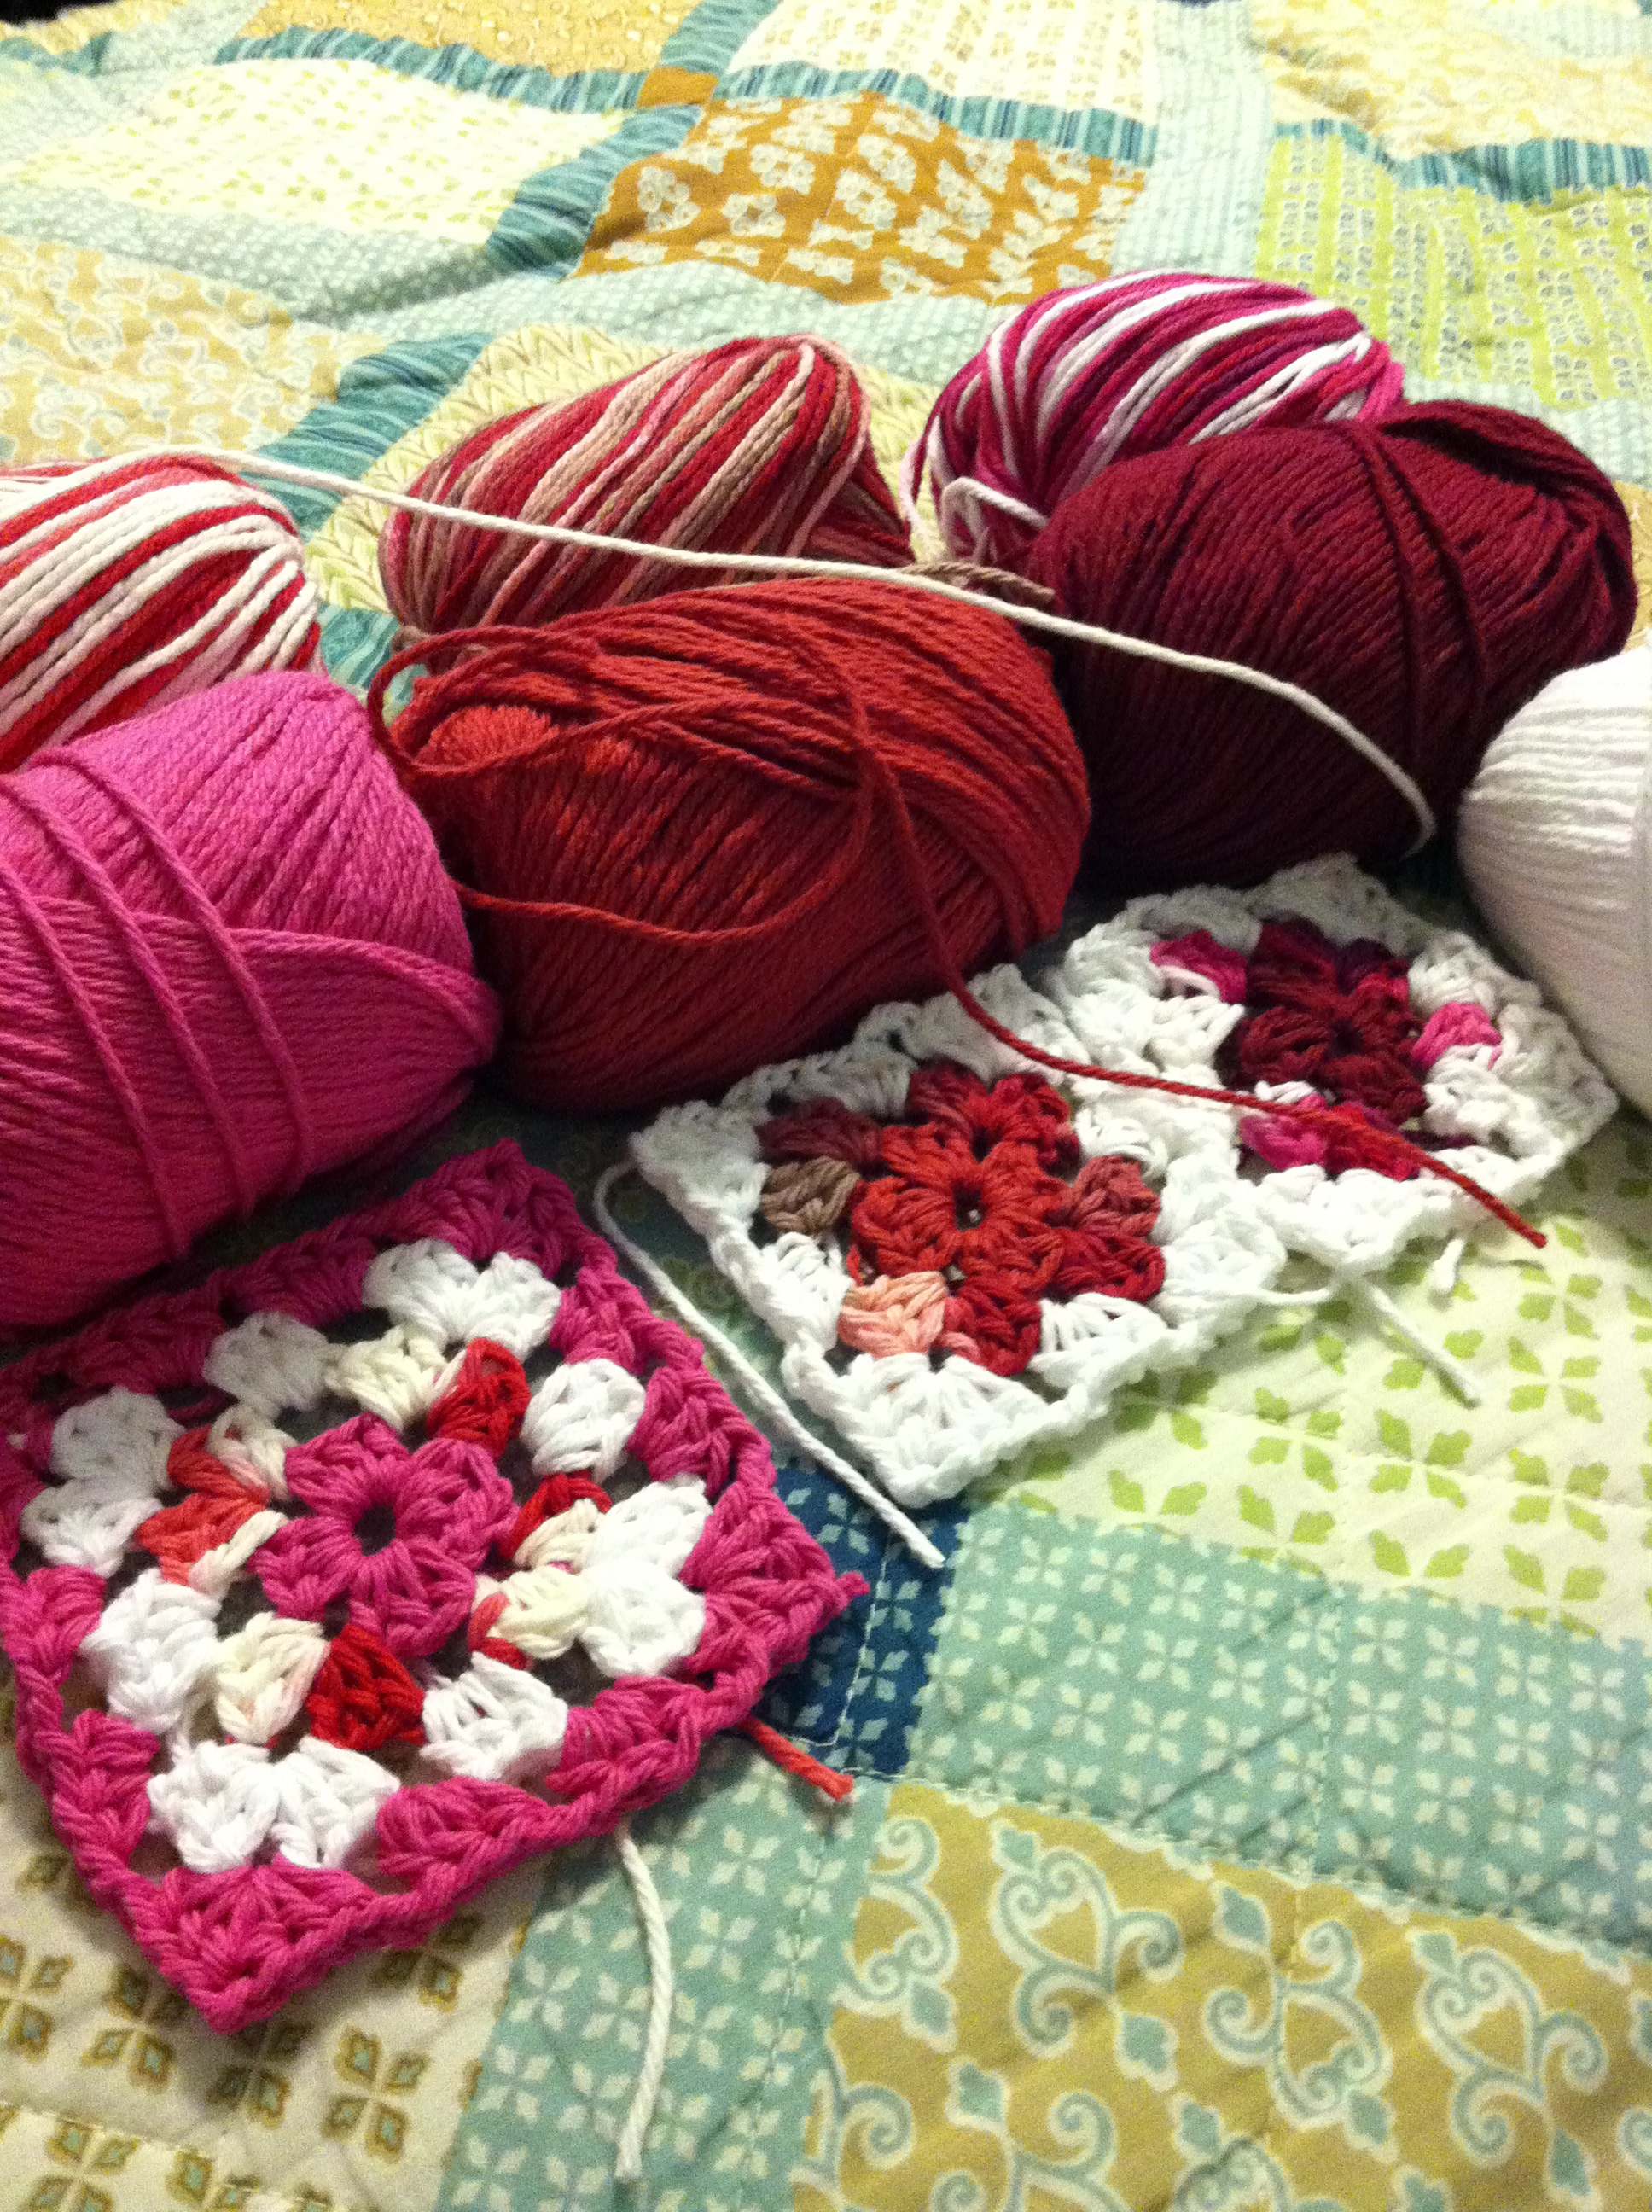 Finished Crochet Projects Valentine S Day Table Runner Nicostuff Com